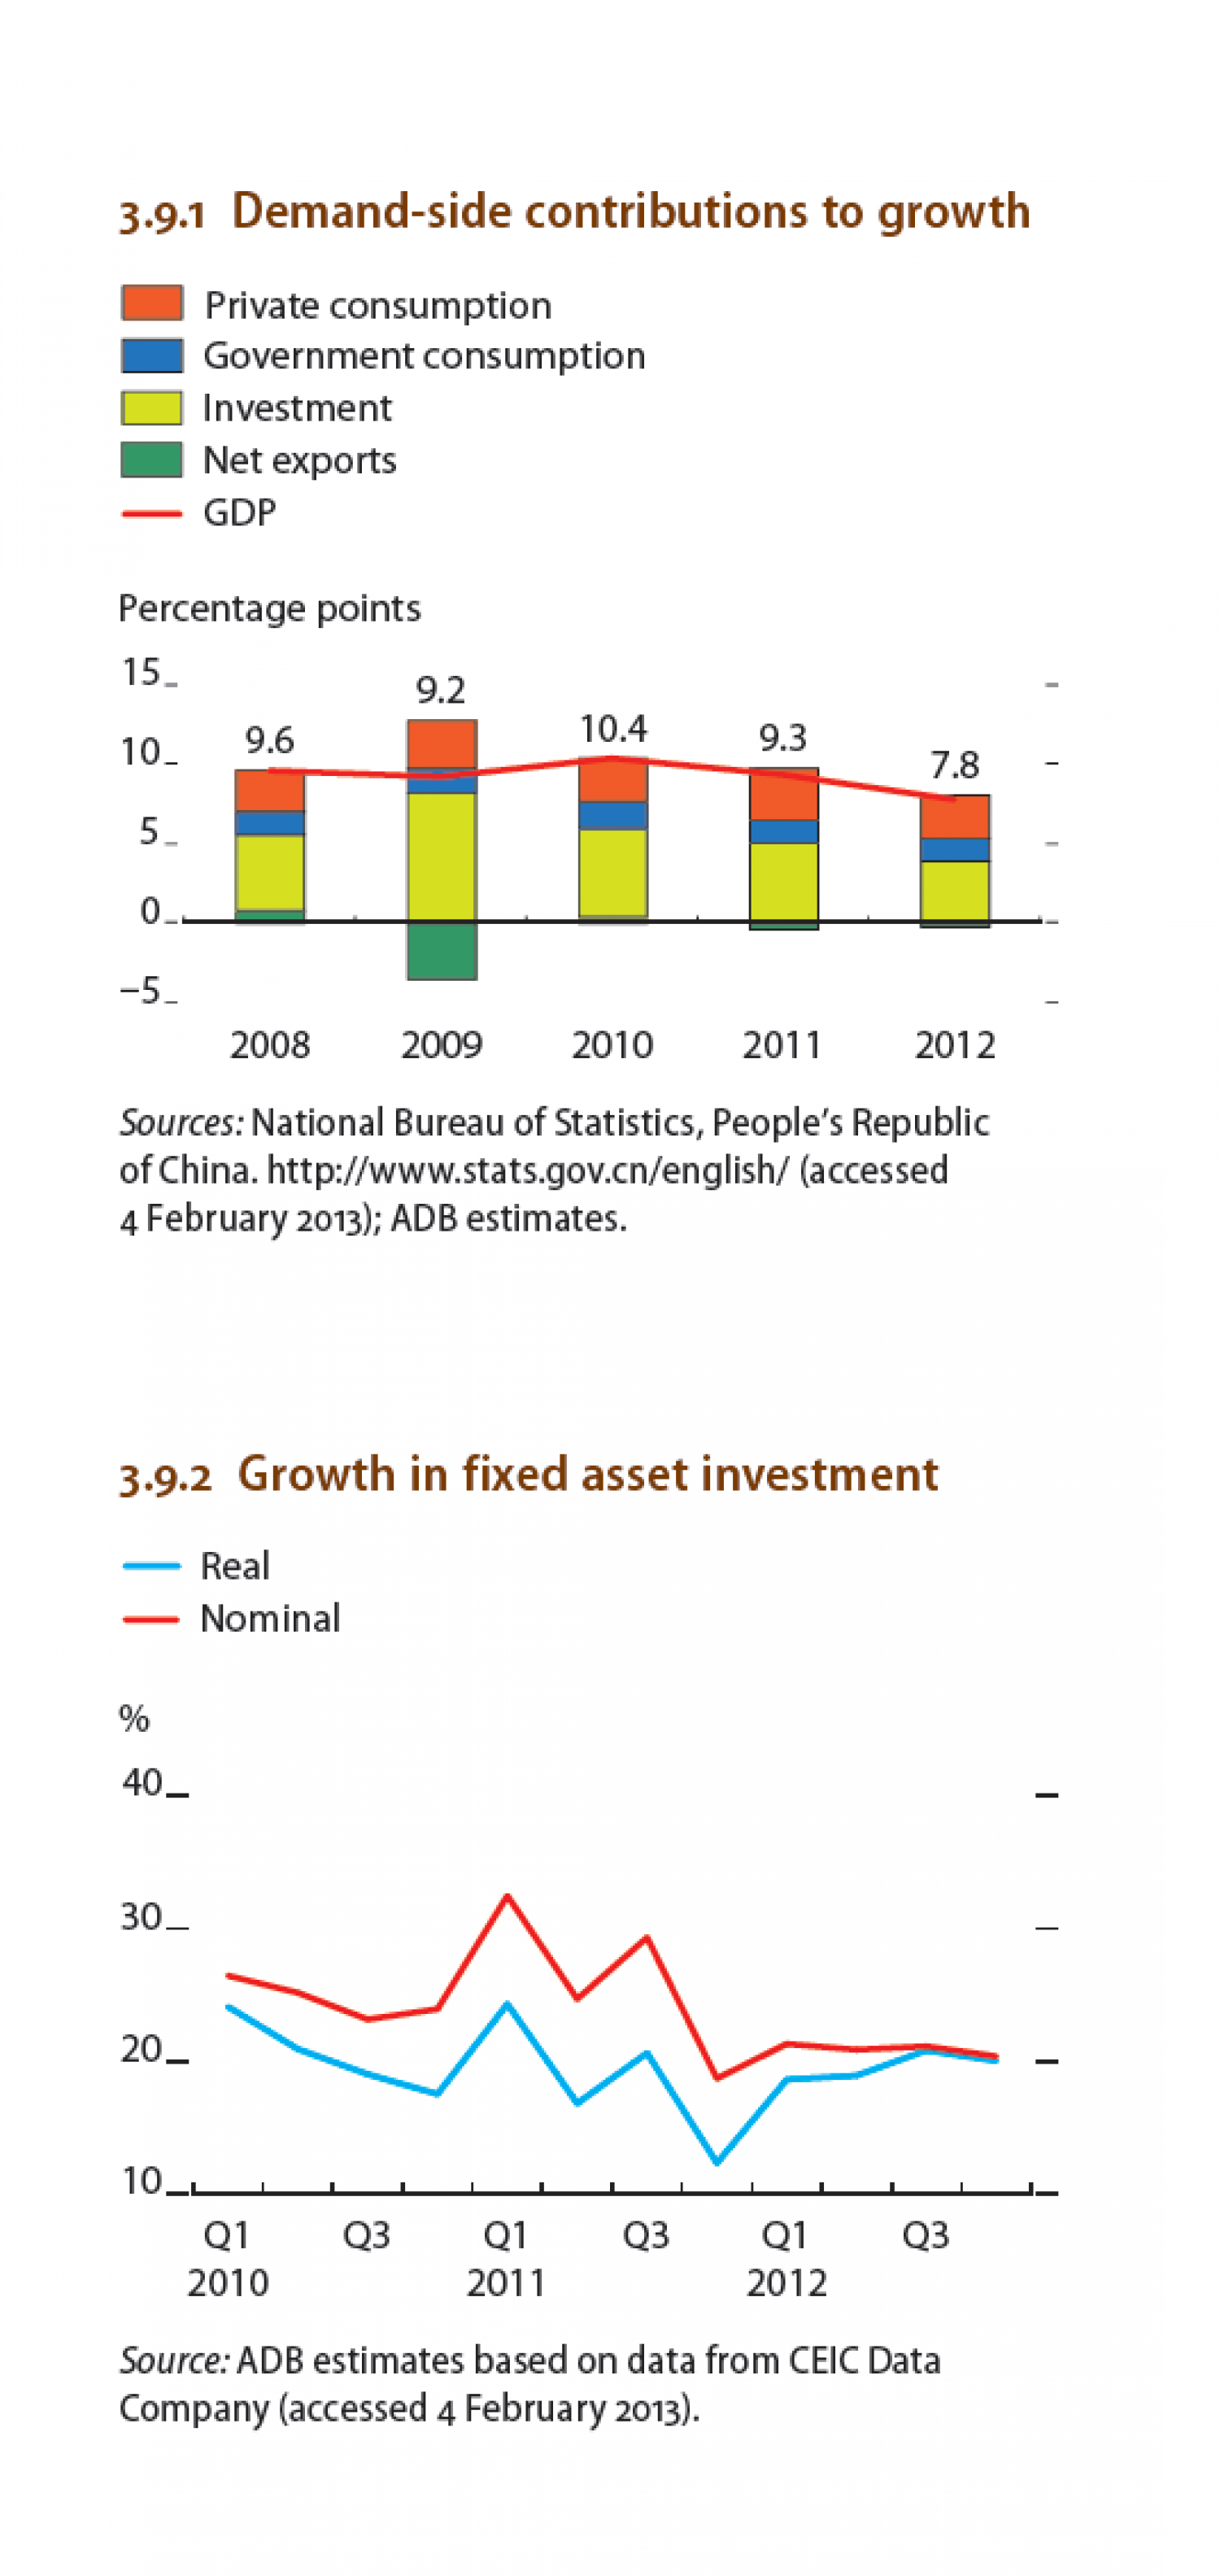 China : Demand-side contributions to growth Infographic